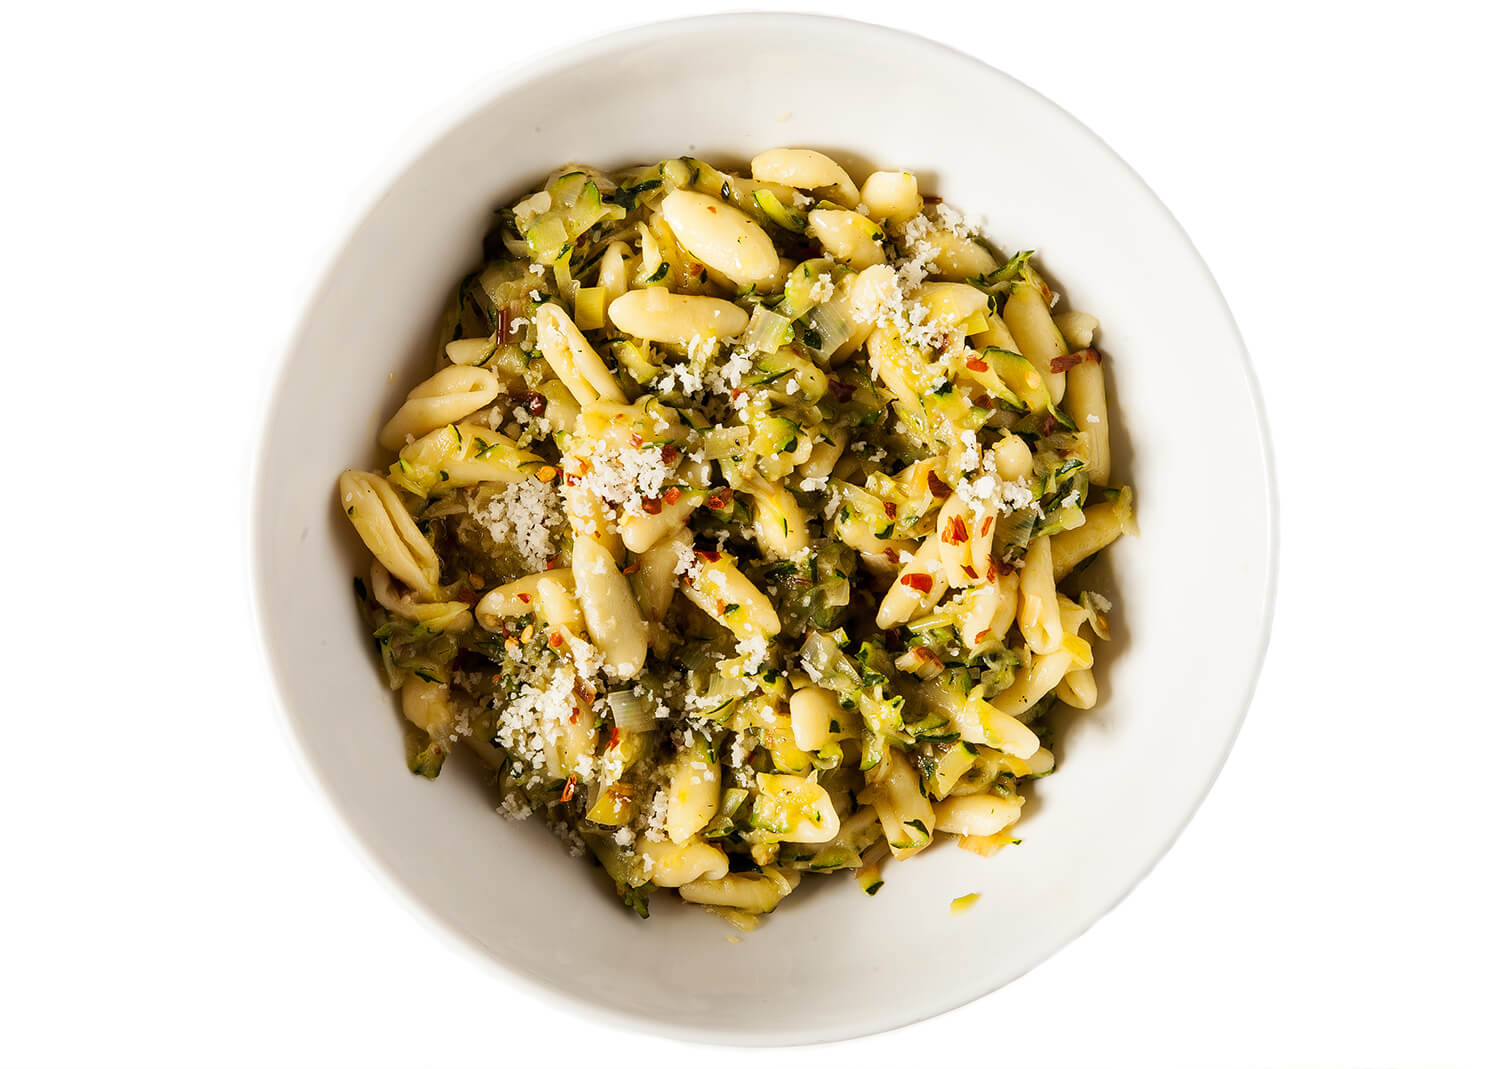 spicy-cavatelli-with-zucchini-and-leeks